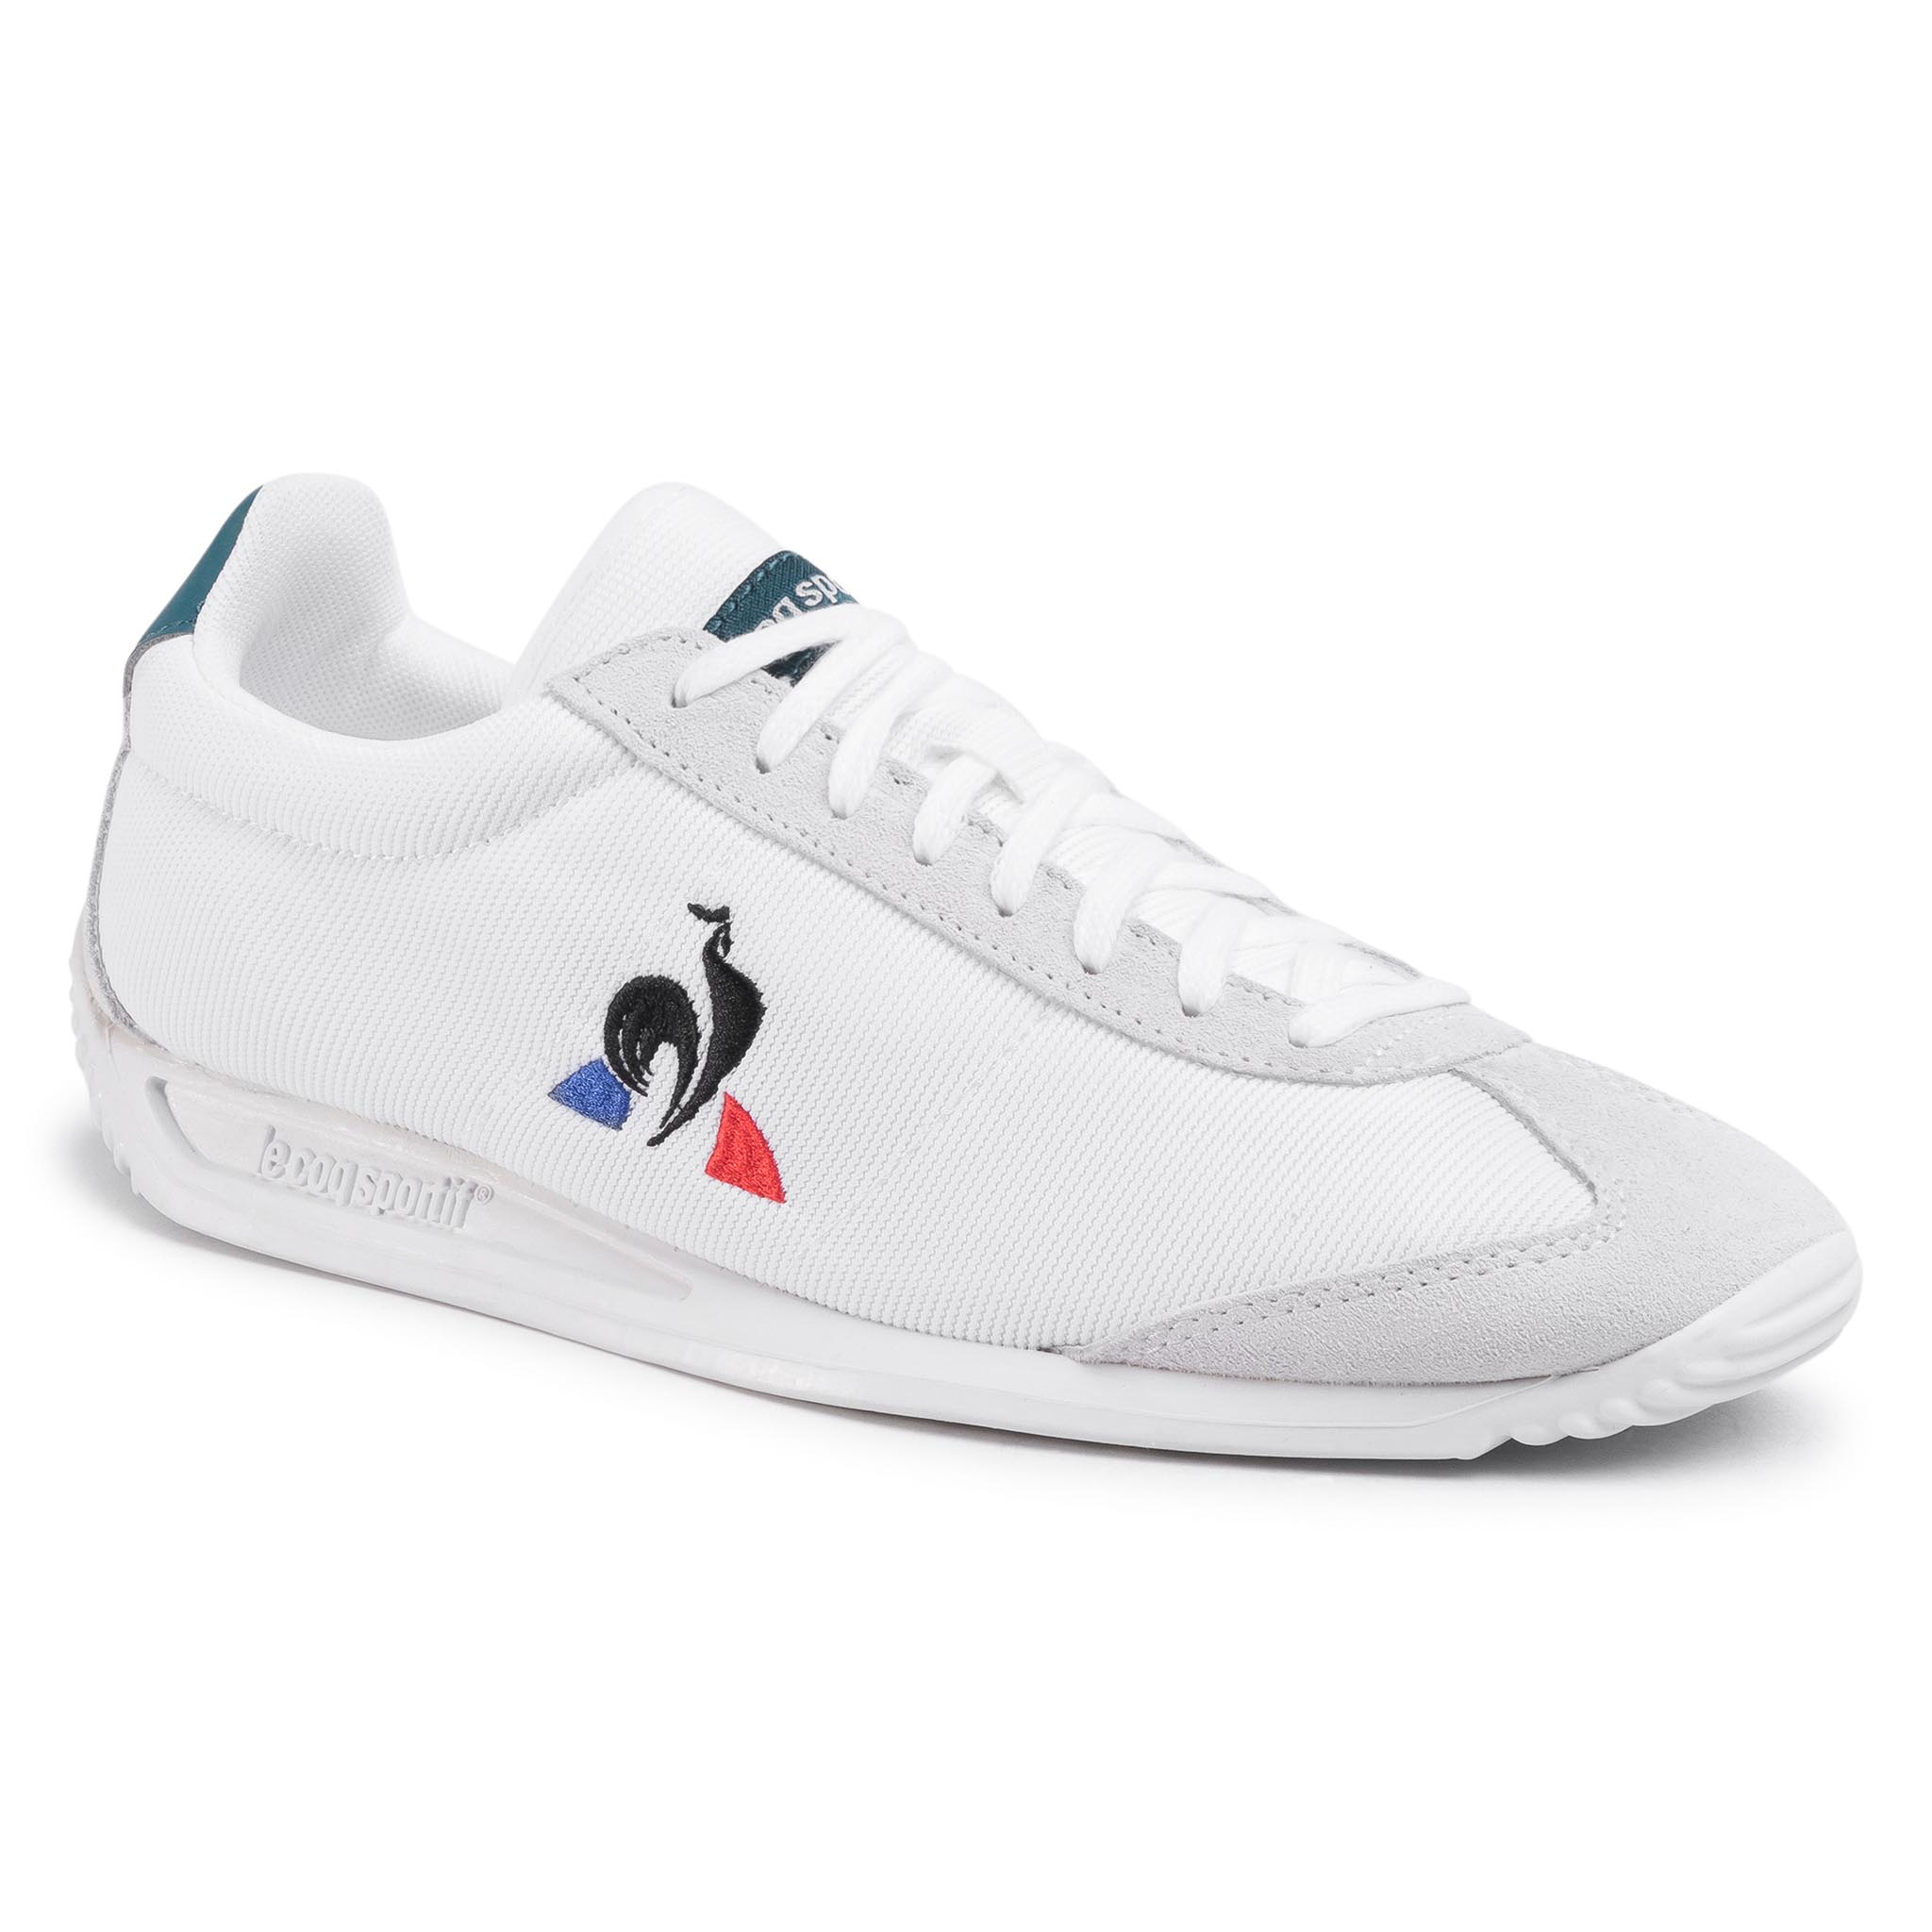 Sneakers LE COQ SPORTIF - Quartz Sport 2010335 Optical White